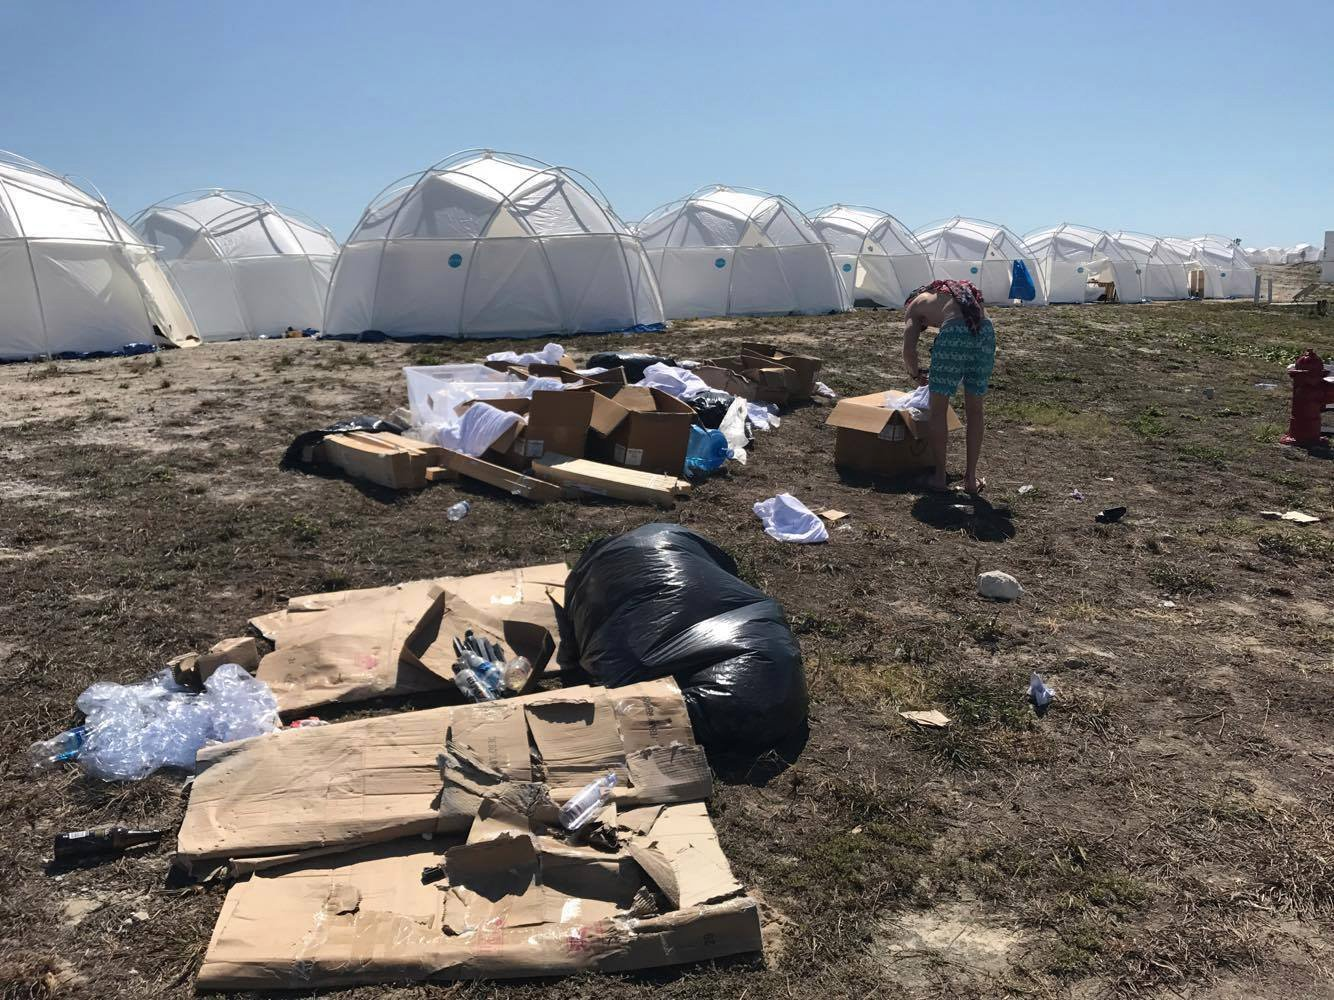 Fyre festival grounds. Cheap tents are set up with trash everywhere.